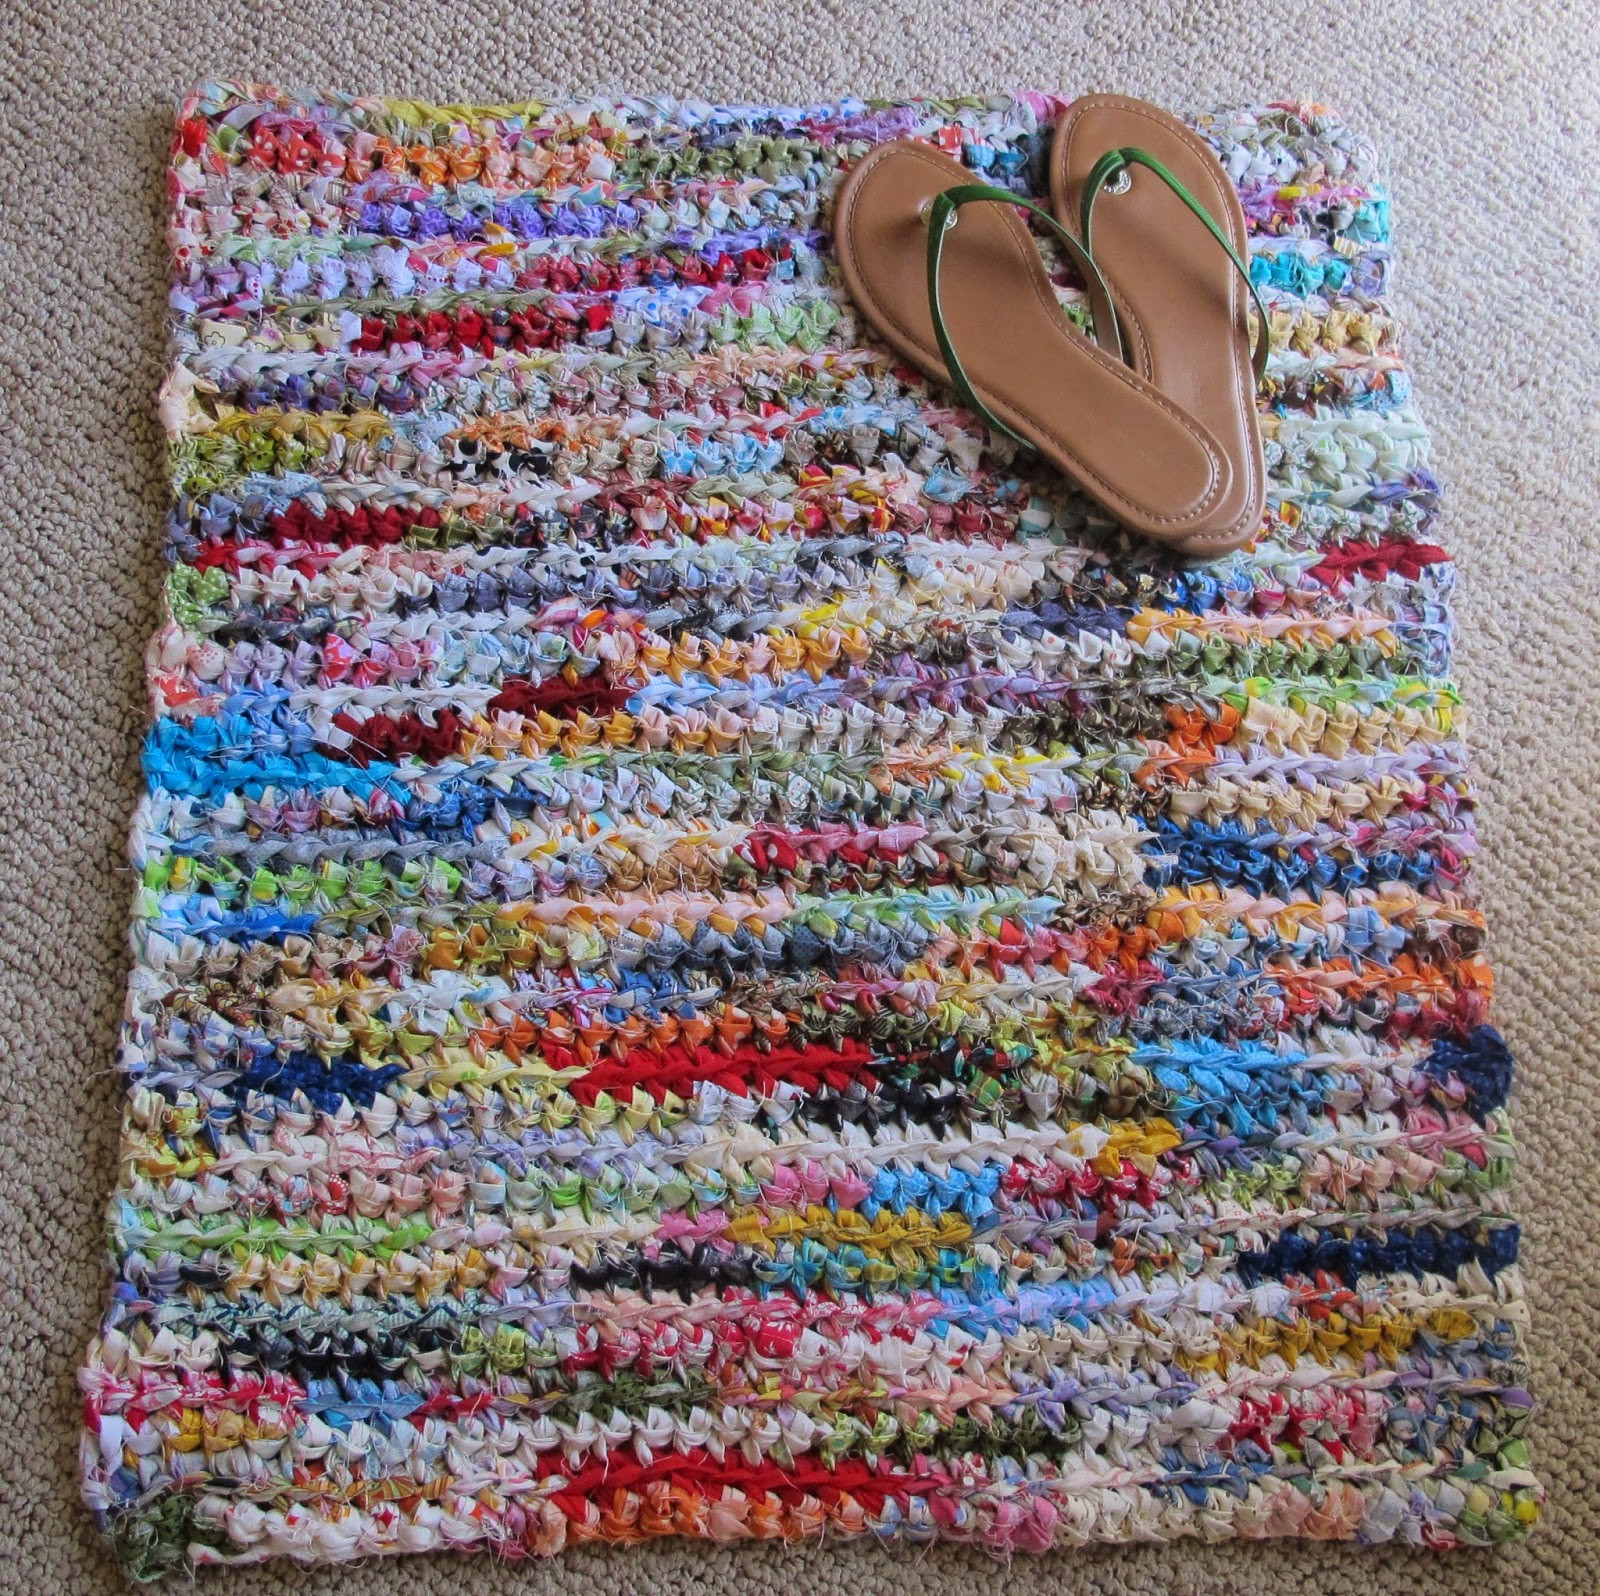 Crochet Rug Patterns Fresh Rag Crochet is Upcycling for Hookers Of Amazing 41 Images Crochet Rug Patterns